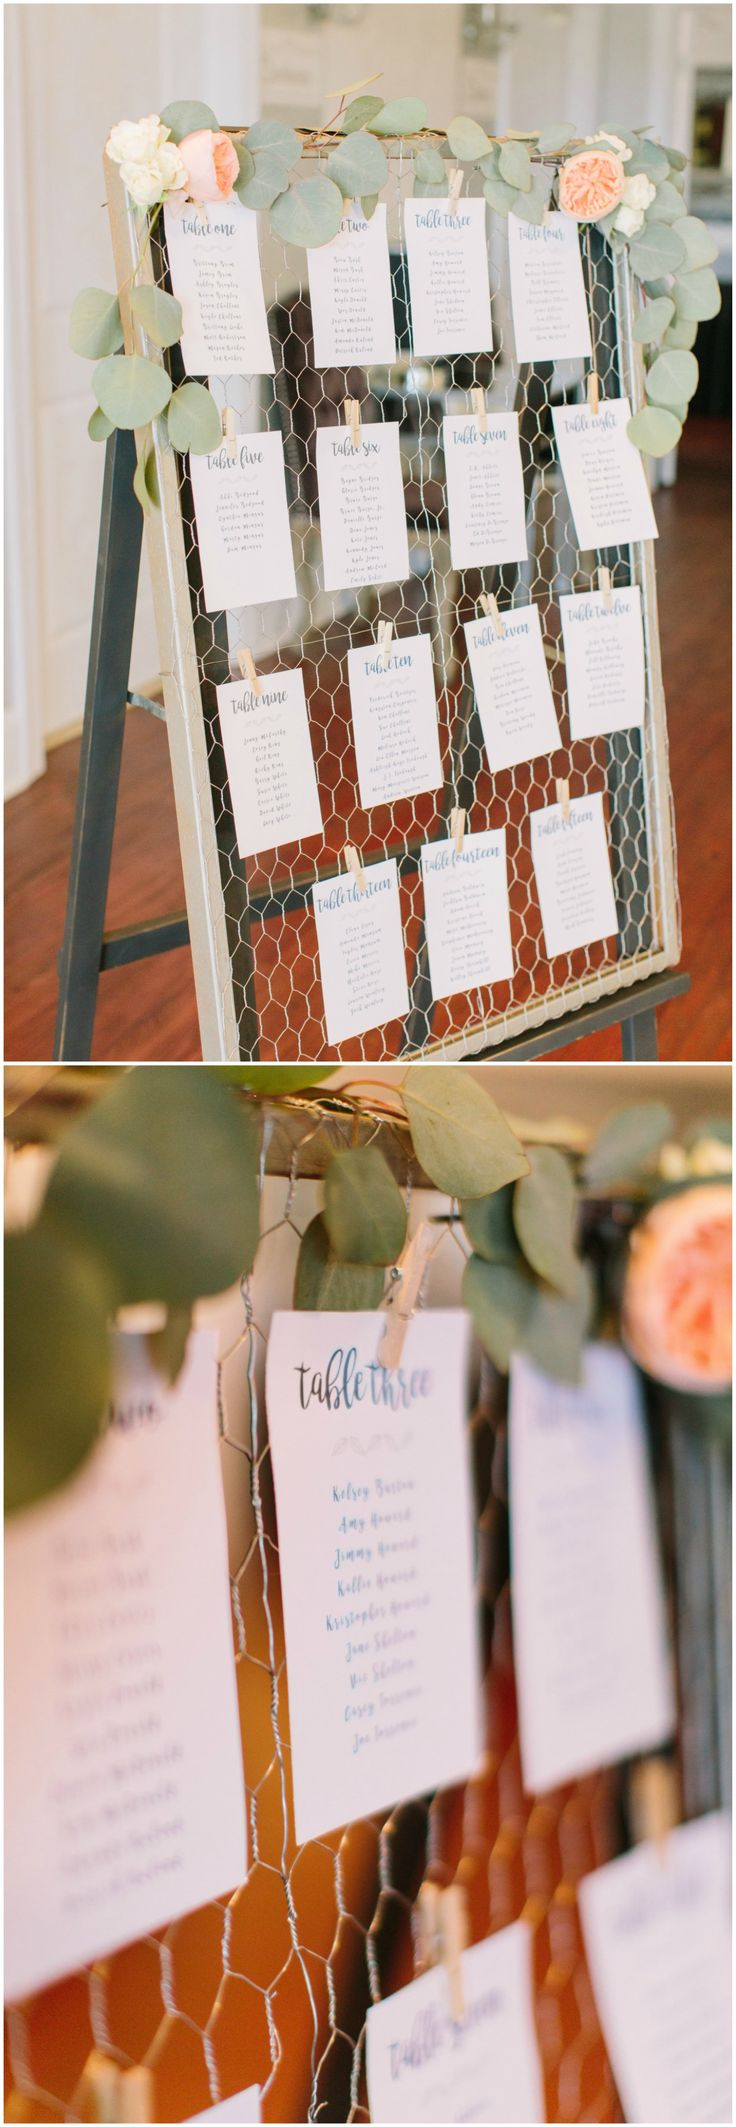 Wedding reception table assignments, mini clothespins, peach and cream florals, leaves // Nicki Metcalf Photography